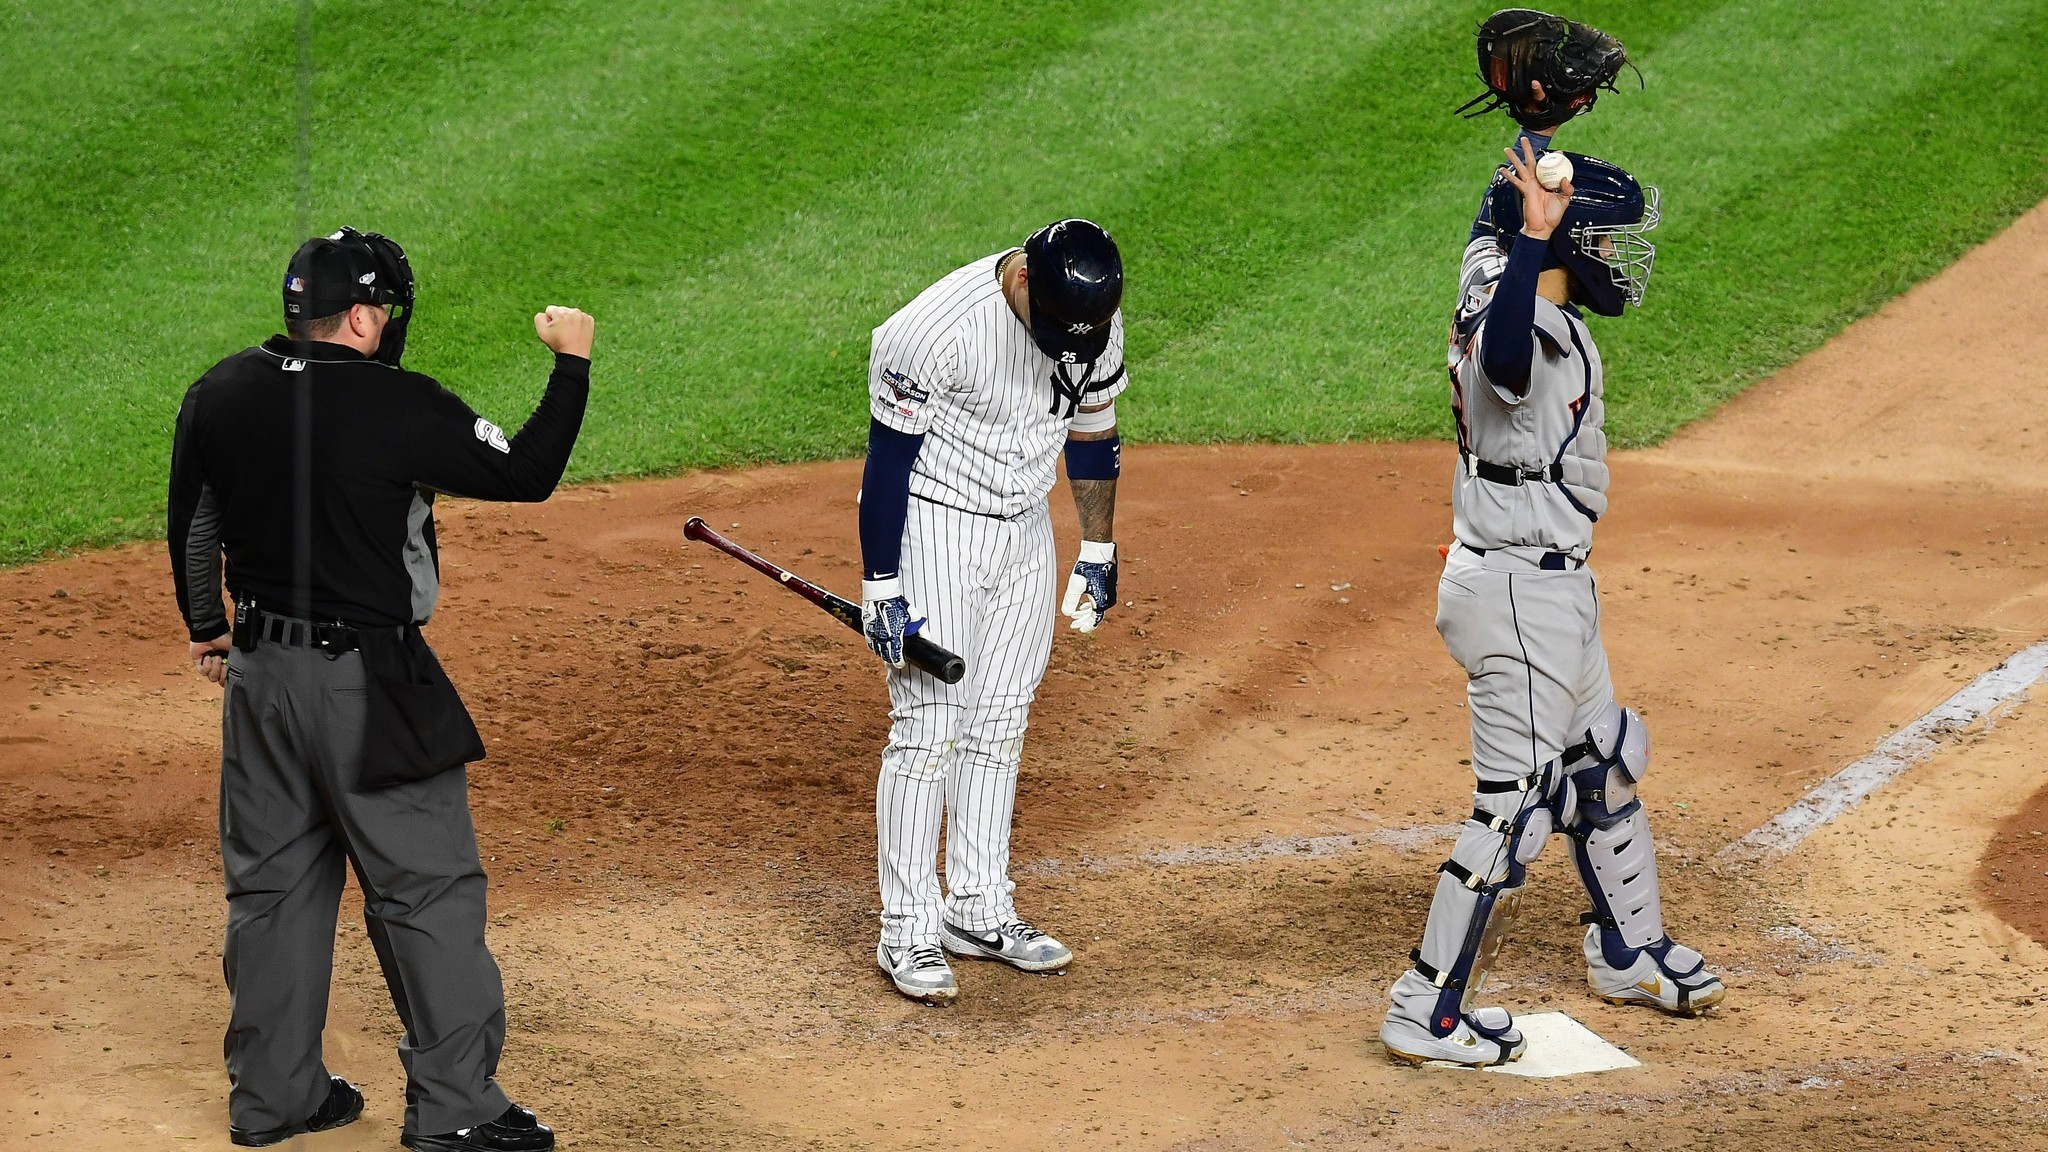 Gleyber Torres doesn't believe the Astros cheating stopped after 2017